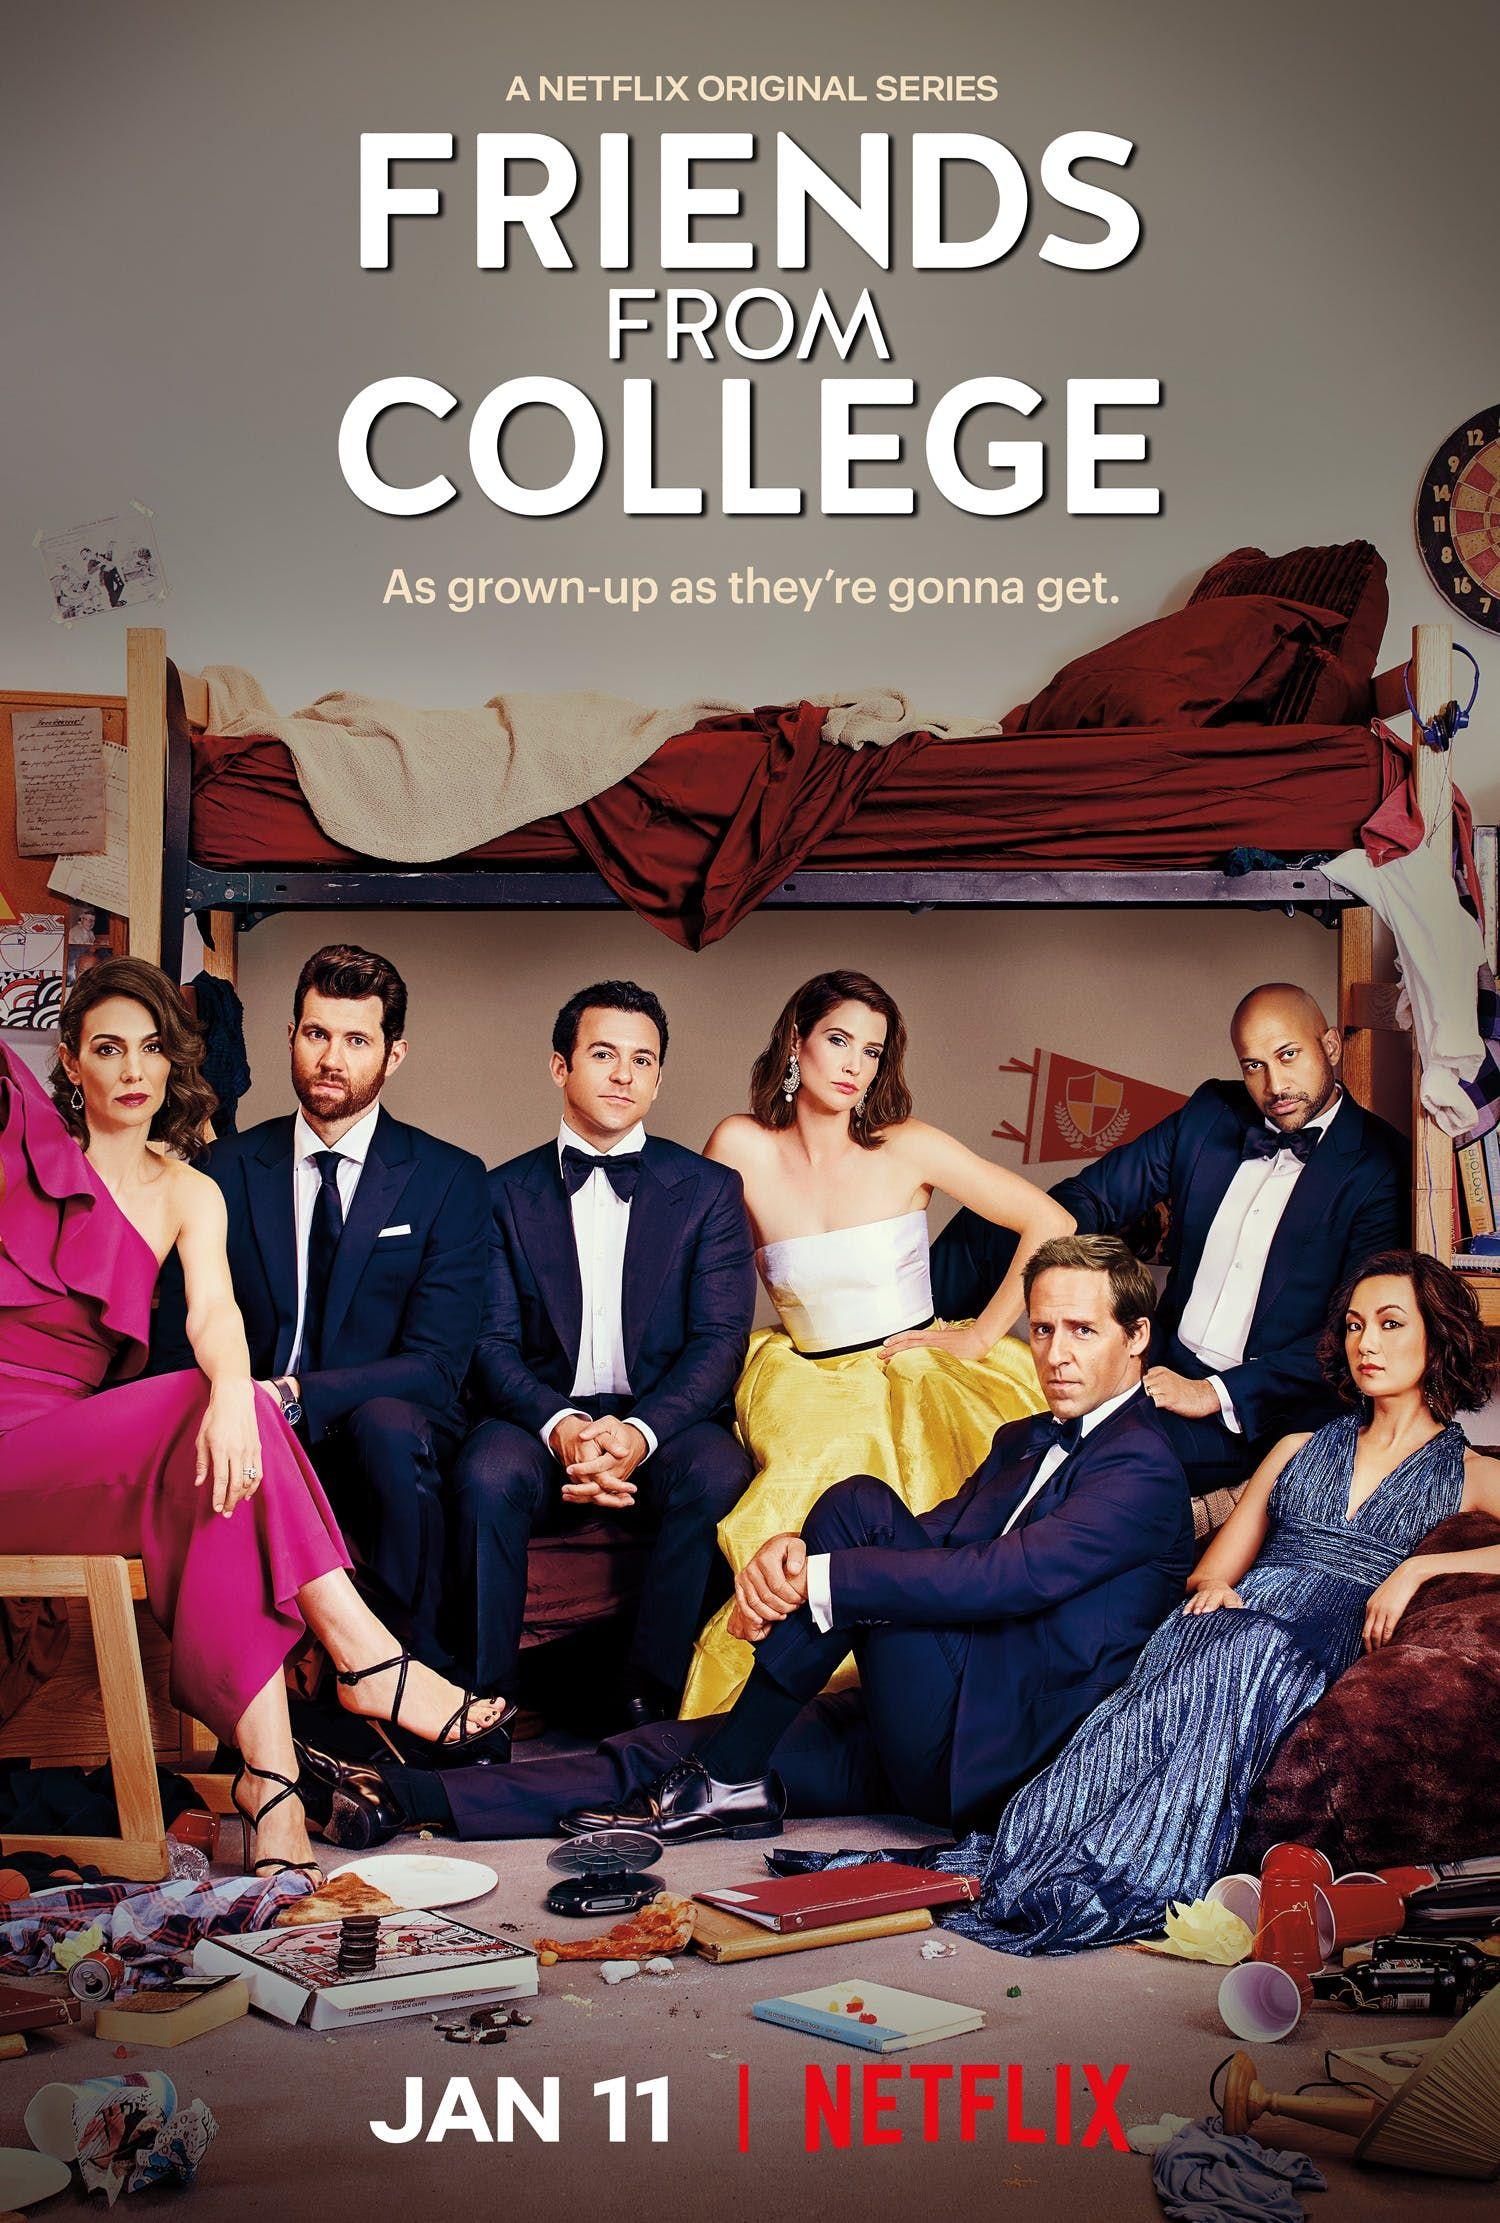 Pin by Teresa Emrich on Netflix | Tv series 2017, College